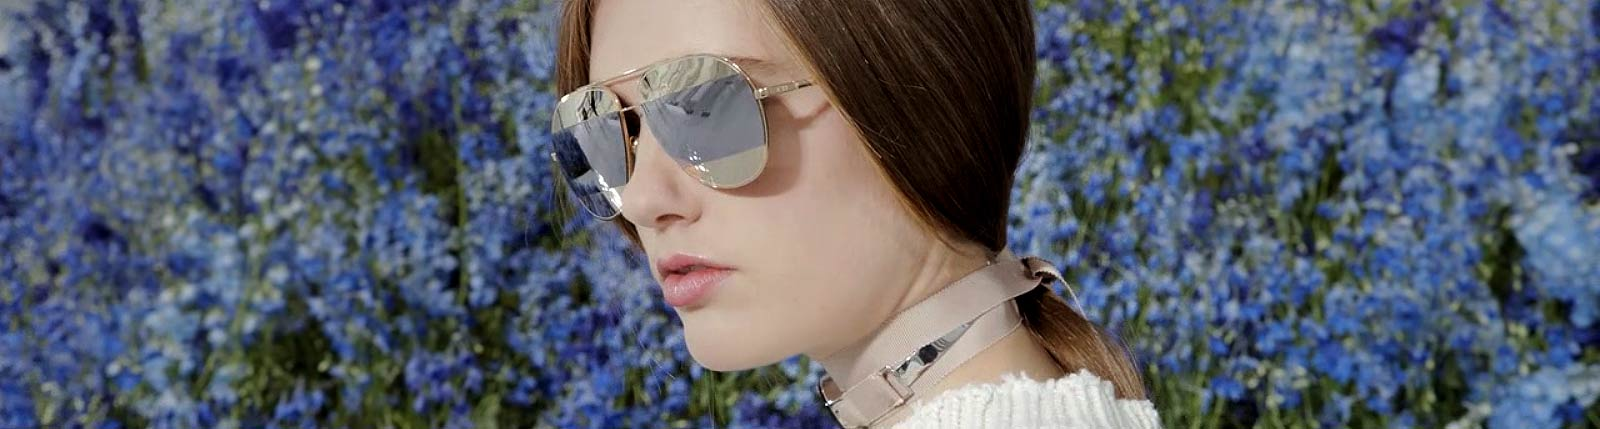 diorsplit-dior-split-sunglasses-model-campaign-colors-poster-latest-spring-summer-2016-top-best